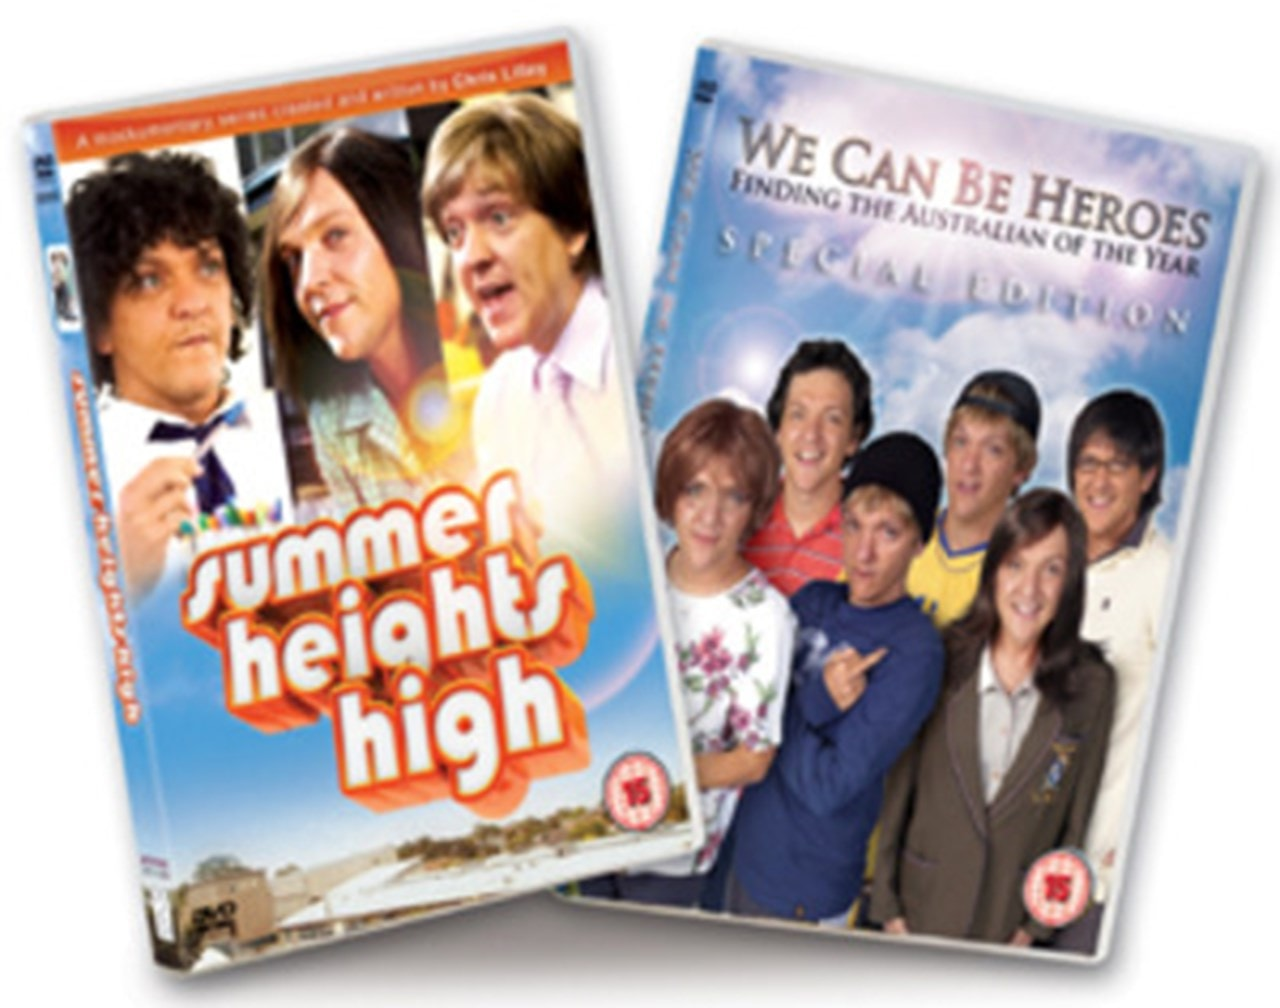 Summer Heights High/We Can Be Heroes - 1